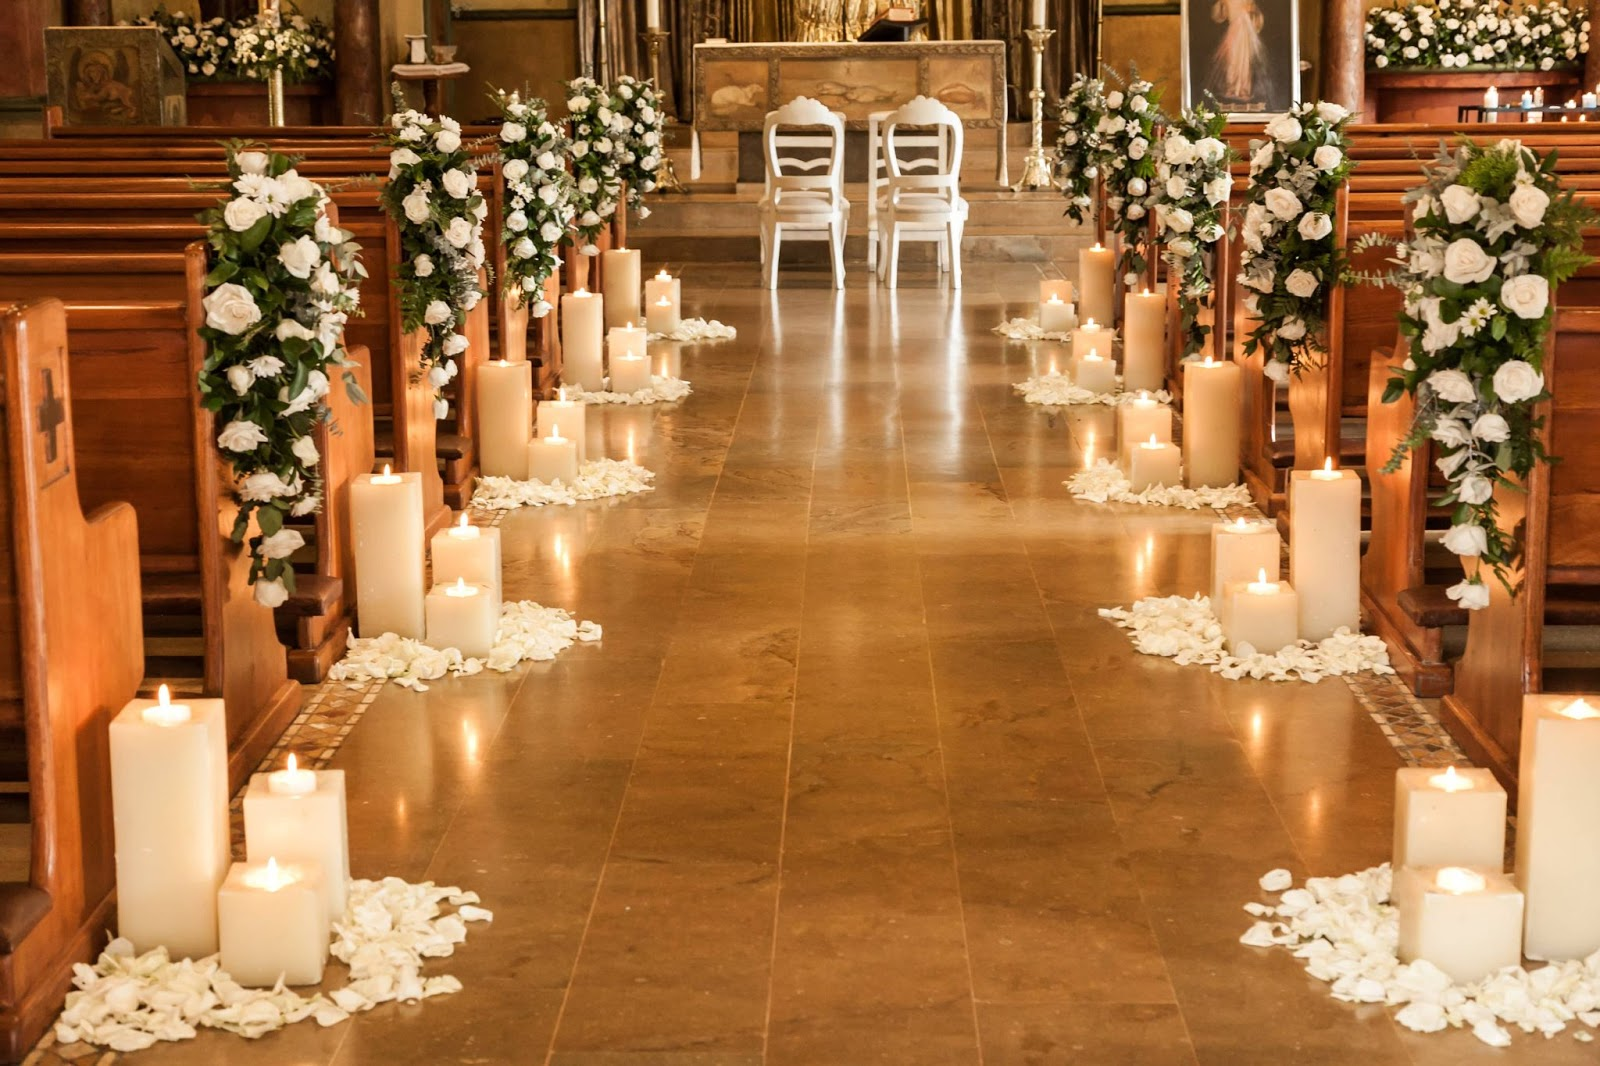 A church weddingisle with candles and flowers at the end of each pew.